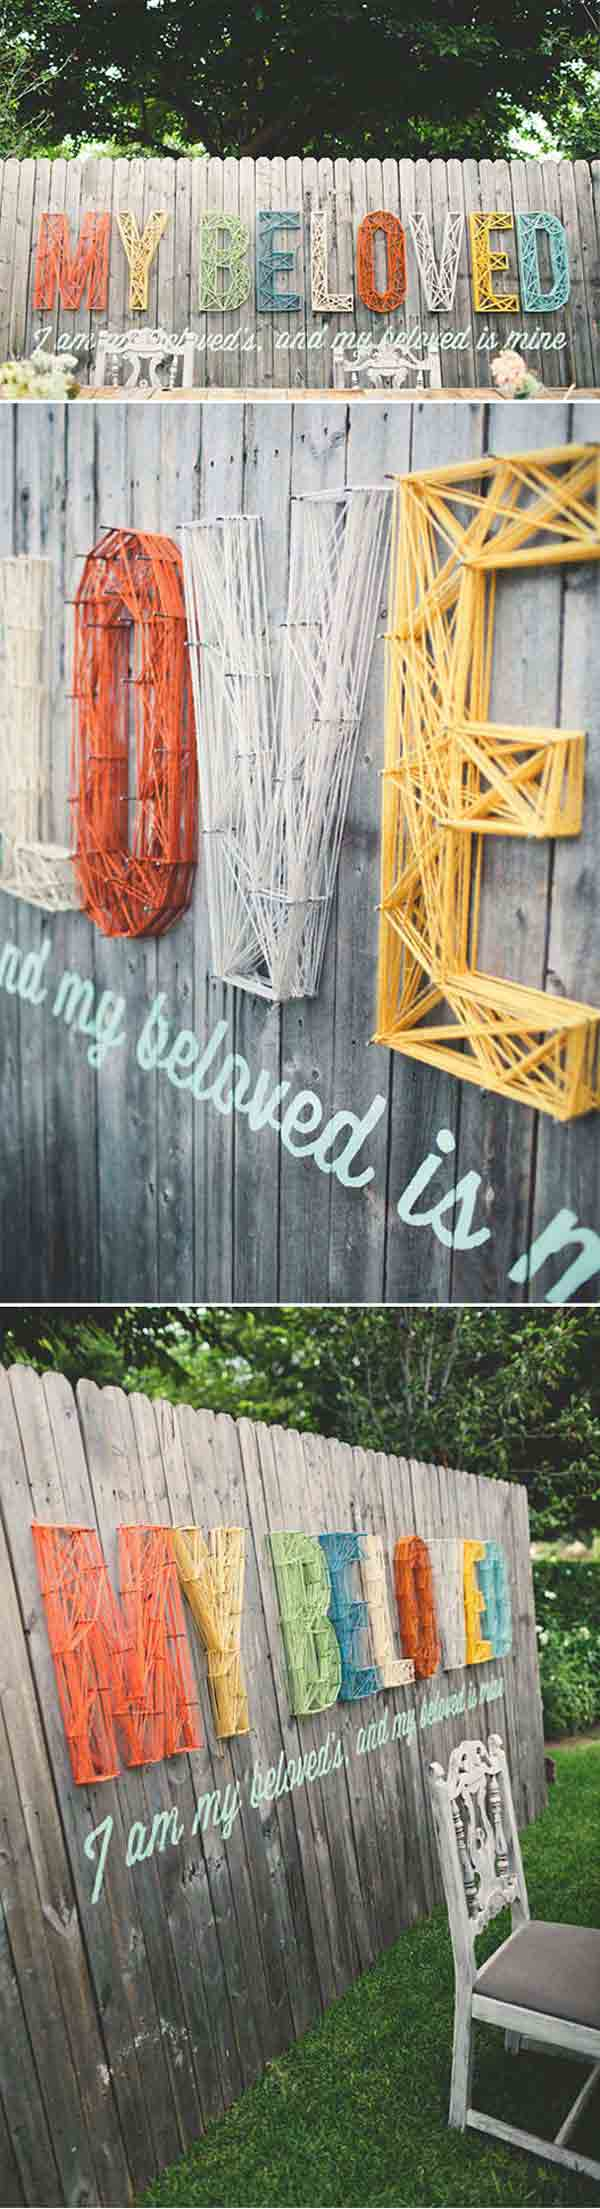 Top 23 Surprising DIY Ideas To Decorate Your Garden Fence ... on Backyard Fence Decor Ideas id=98483